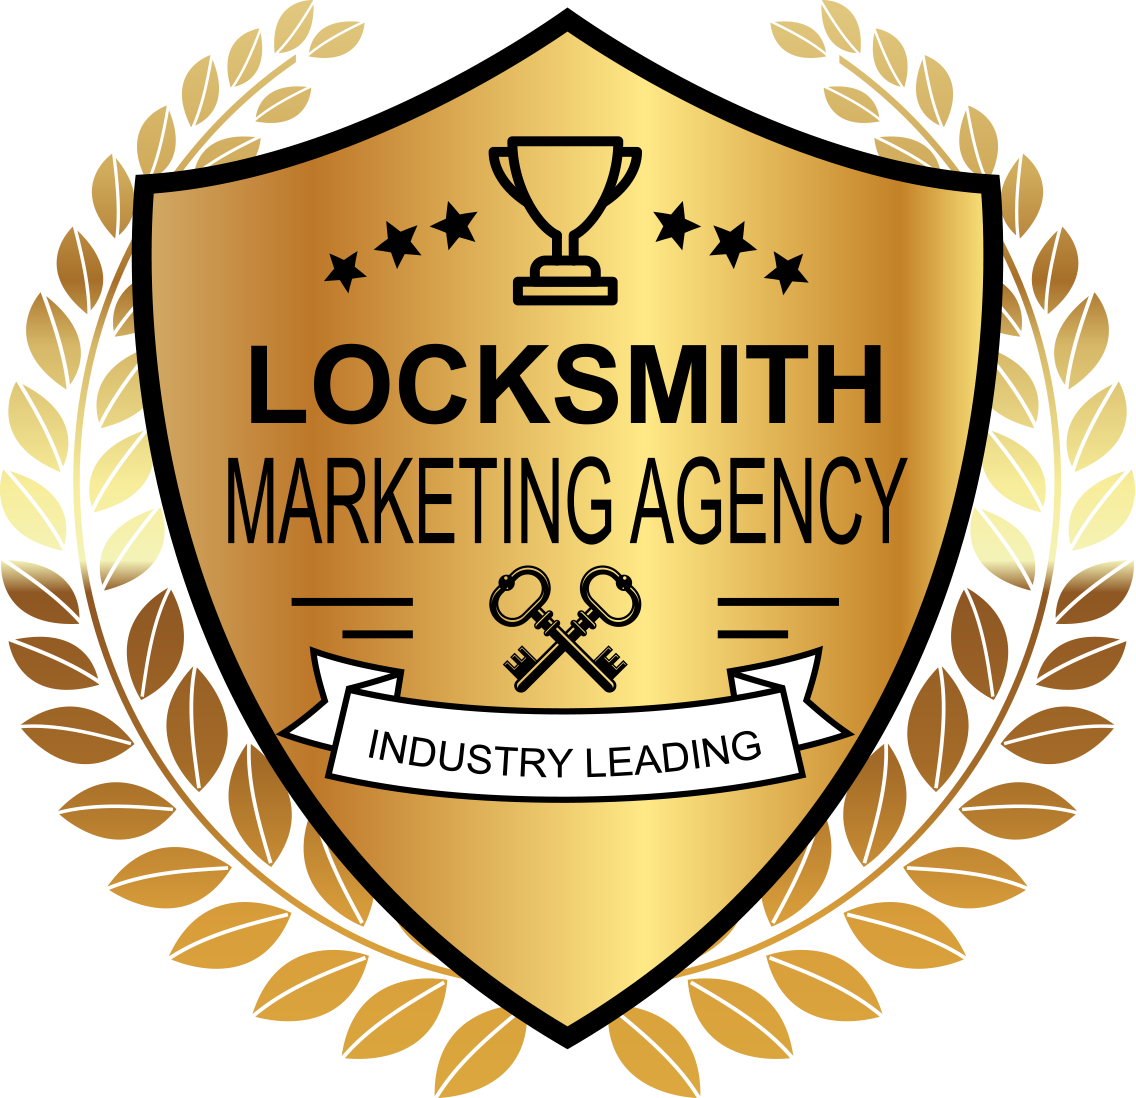 Badge - Industry Leading Locksmith Marketing Agency